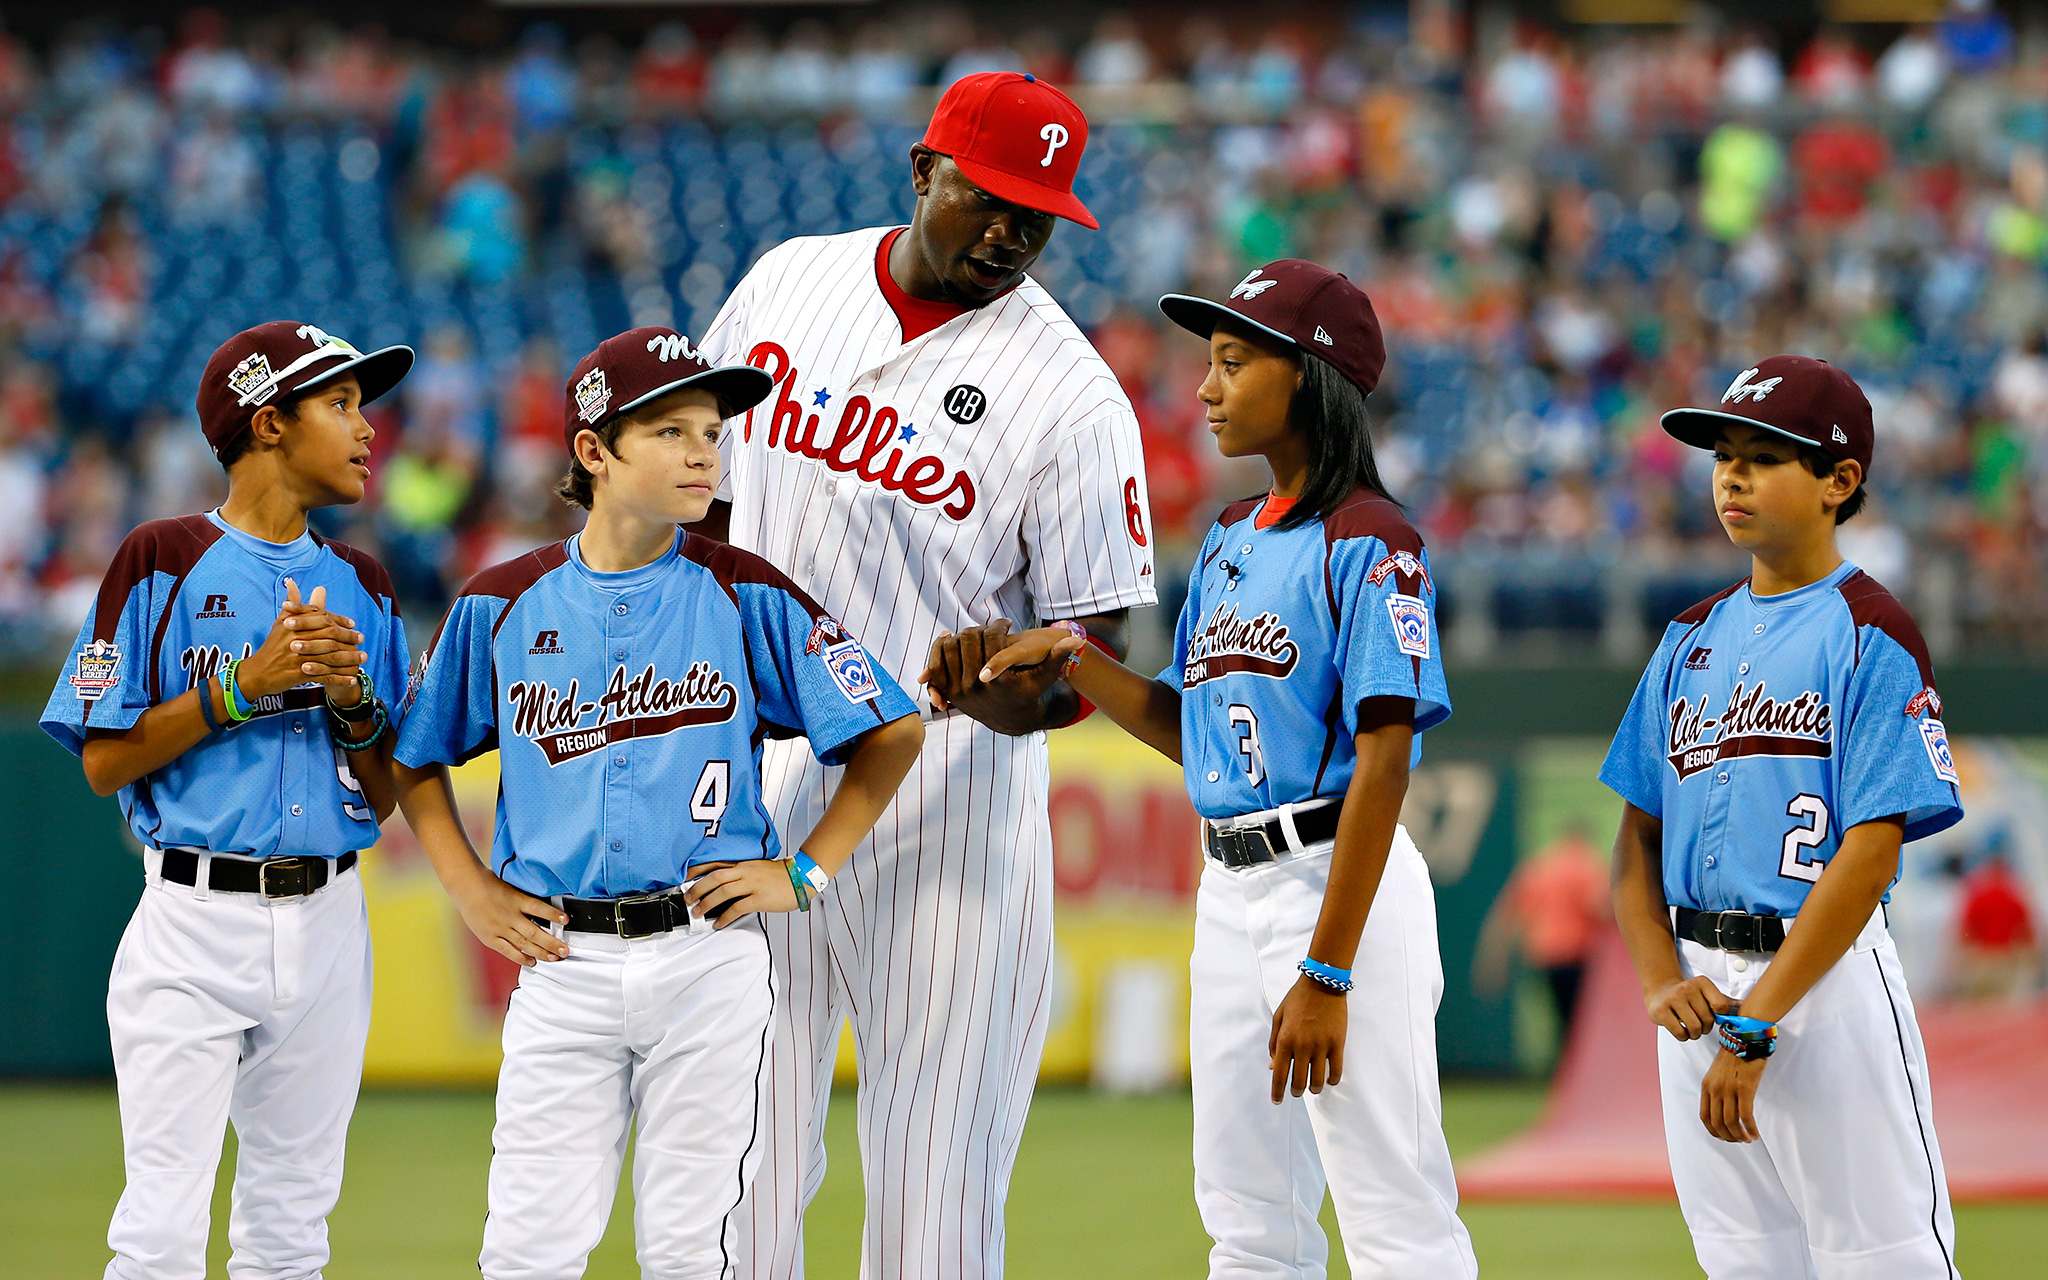 Now that's a tribute. Before the Phillies-Nationals game Wednesday, Ryan Howard congratulates Mo'ne Davis and her Taney Dragons teammates for their Little League World Series accomplishments.